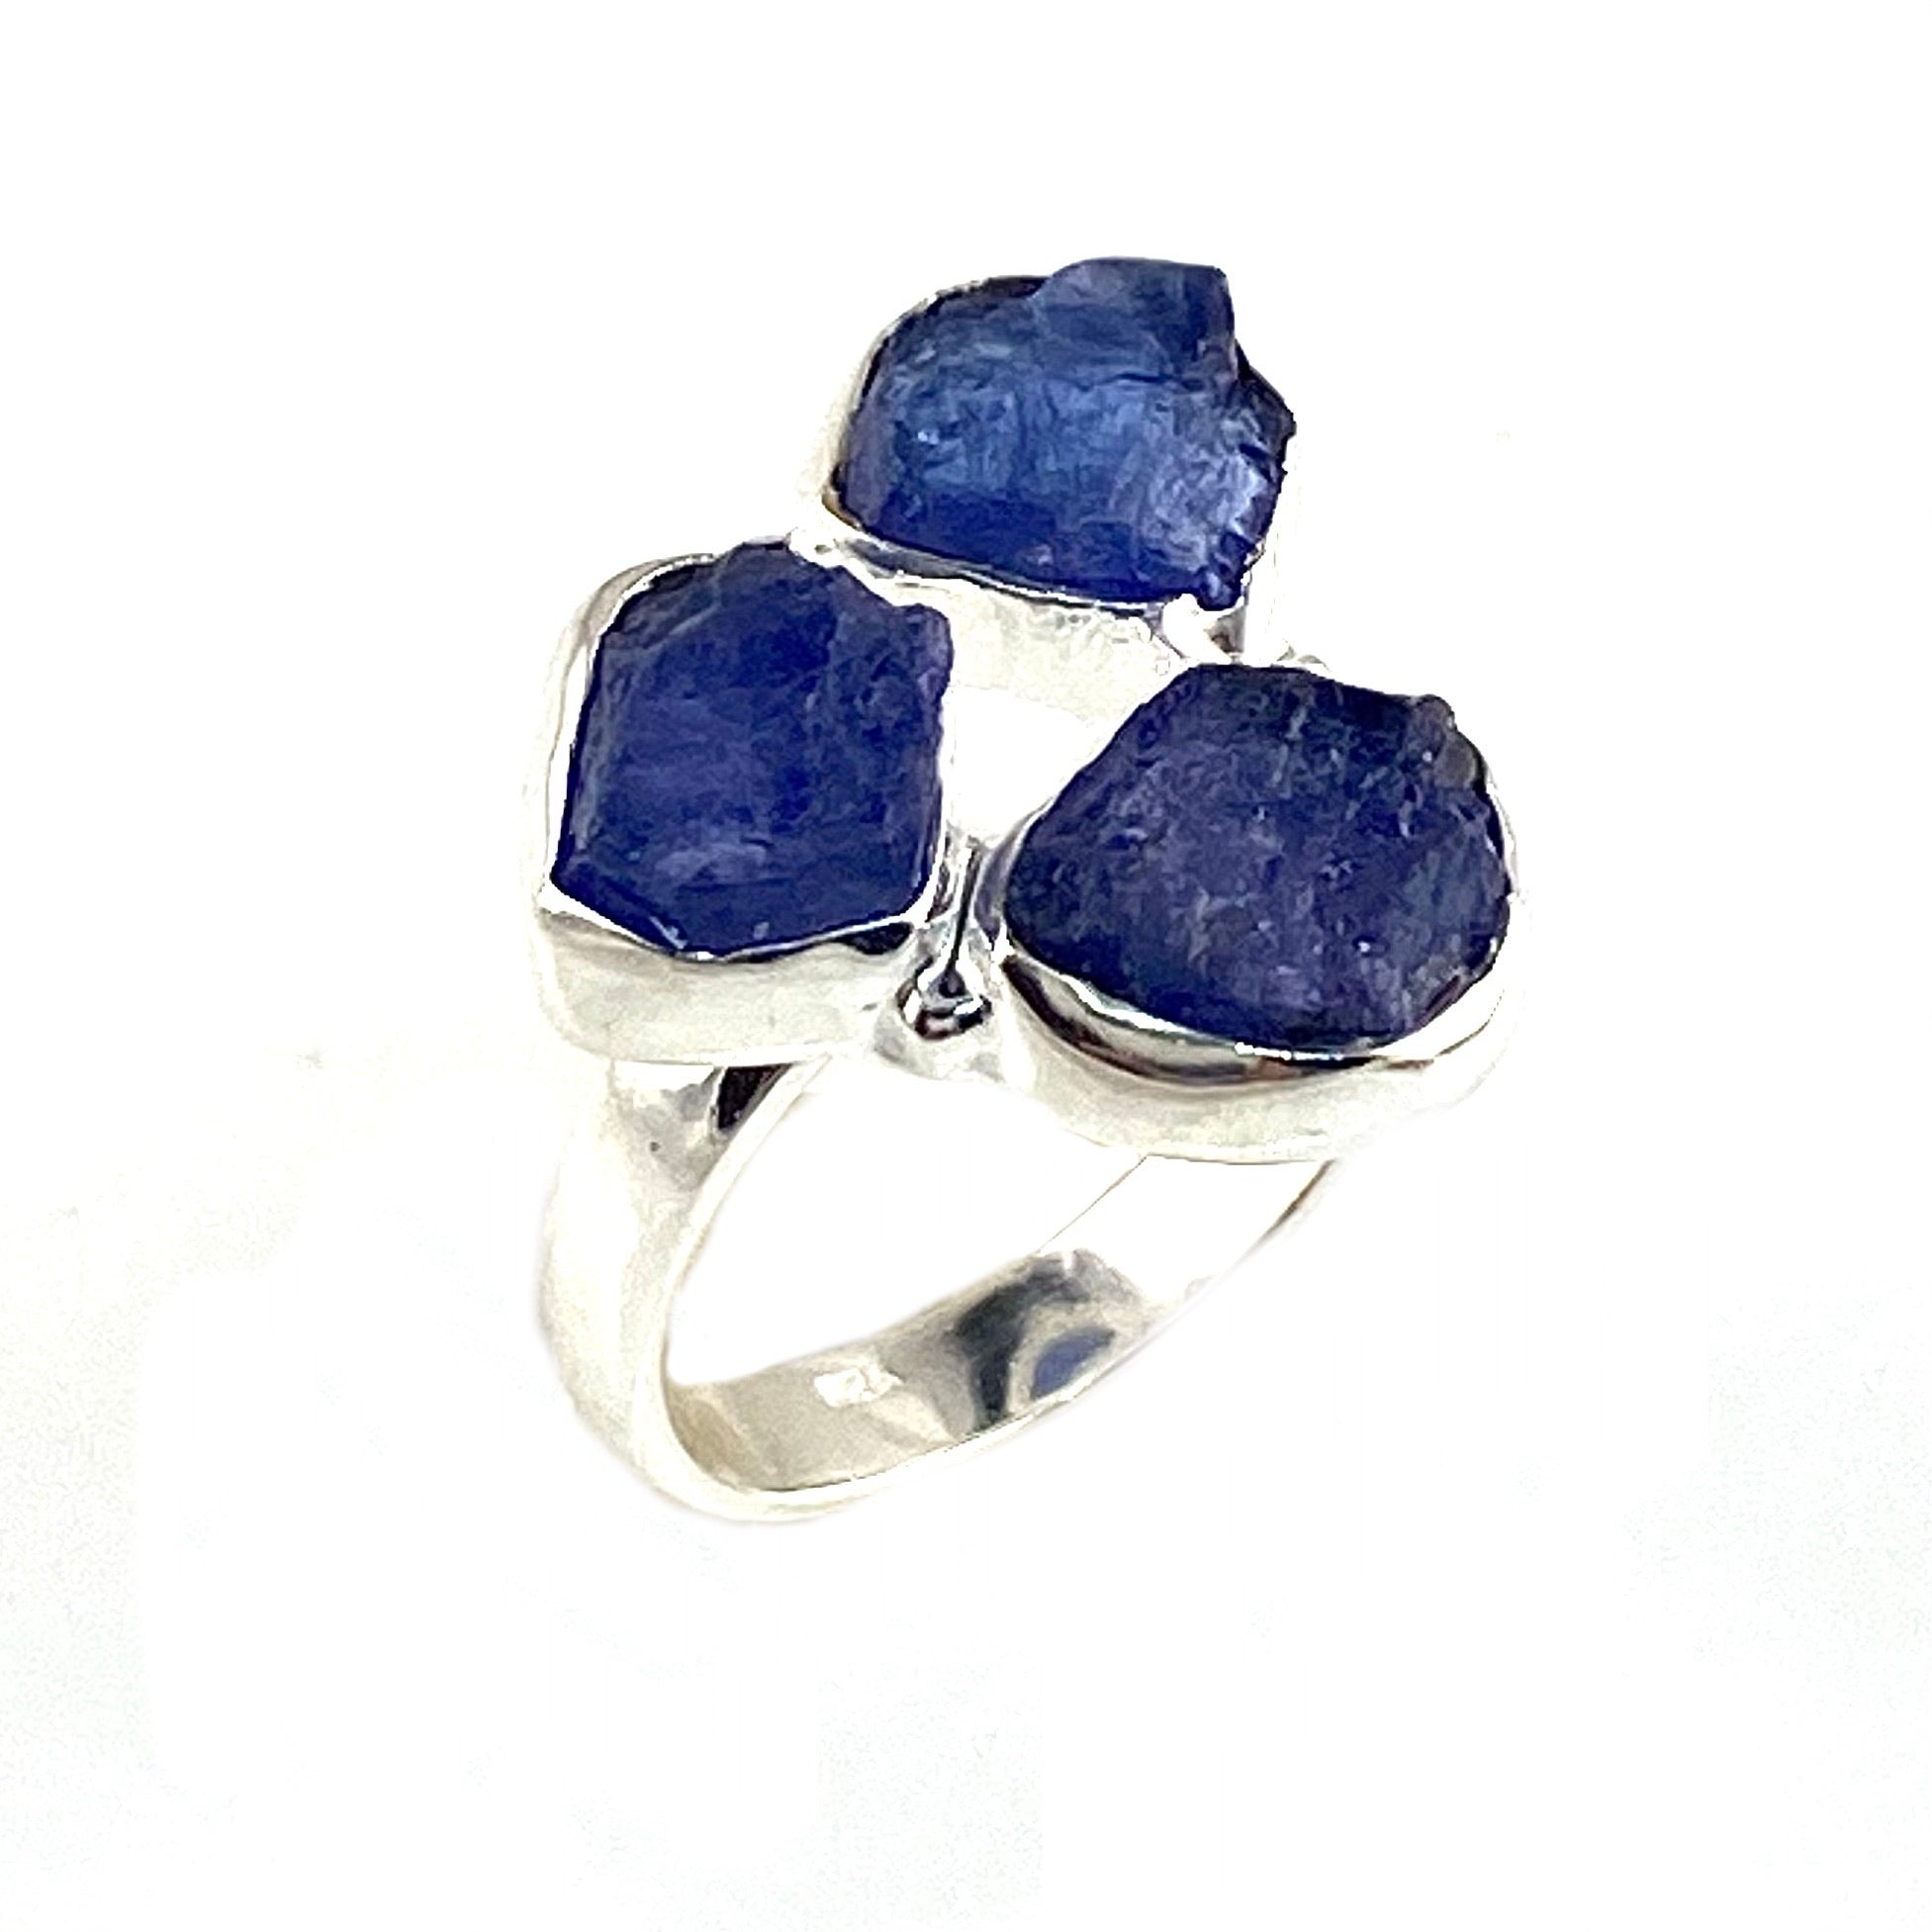 Tanzanite Rough Crystal Three Stone Sterling Silver Ring